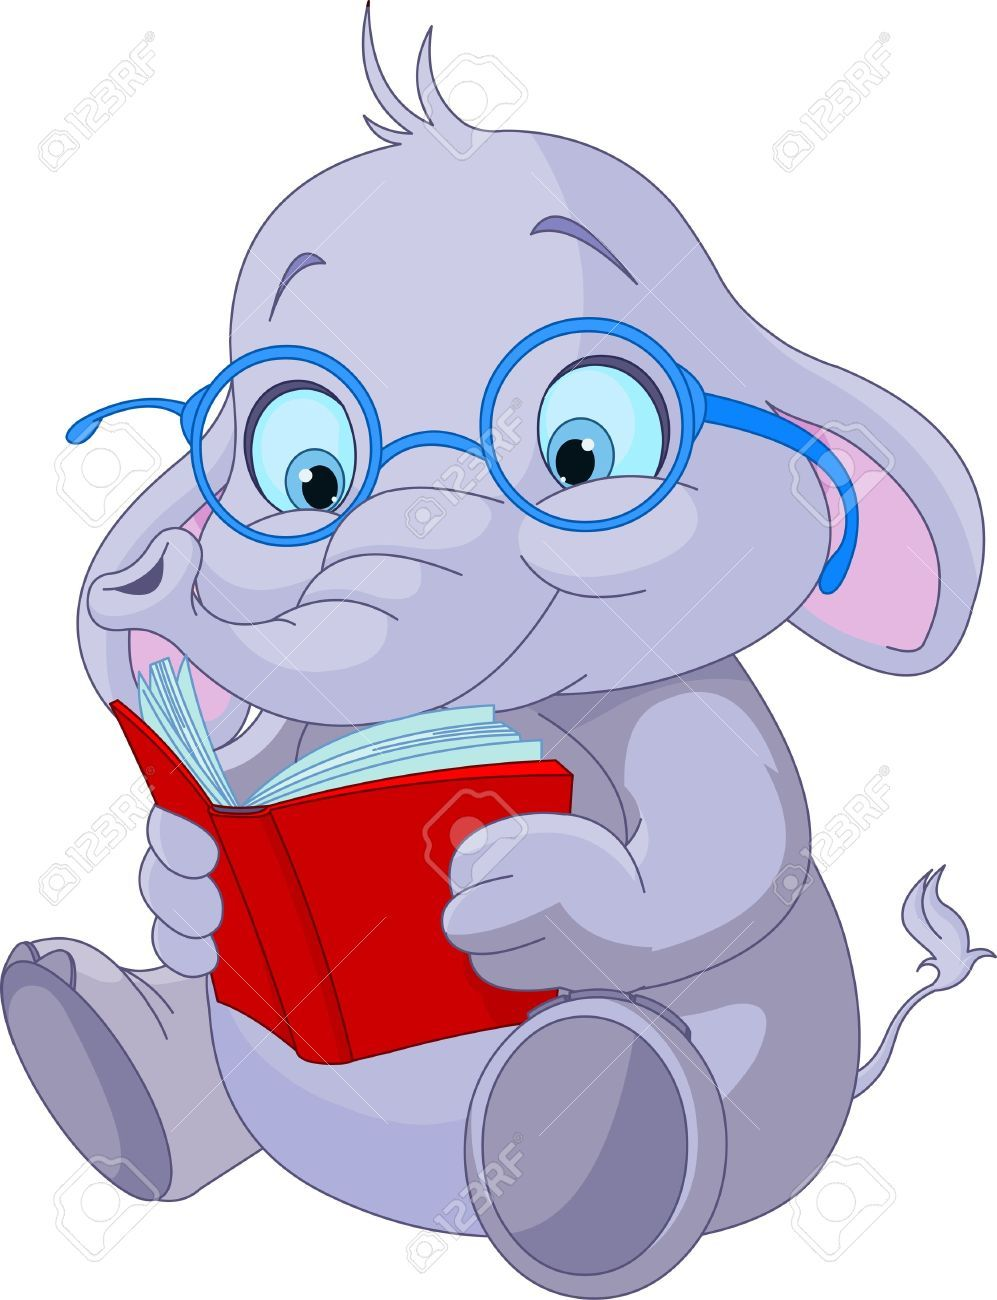 Cute Elephant With Glasses Reading A Book Royalty Free Cliparts ...